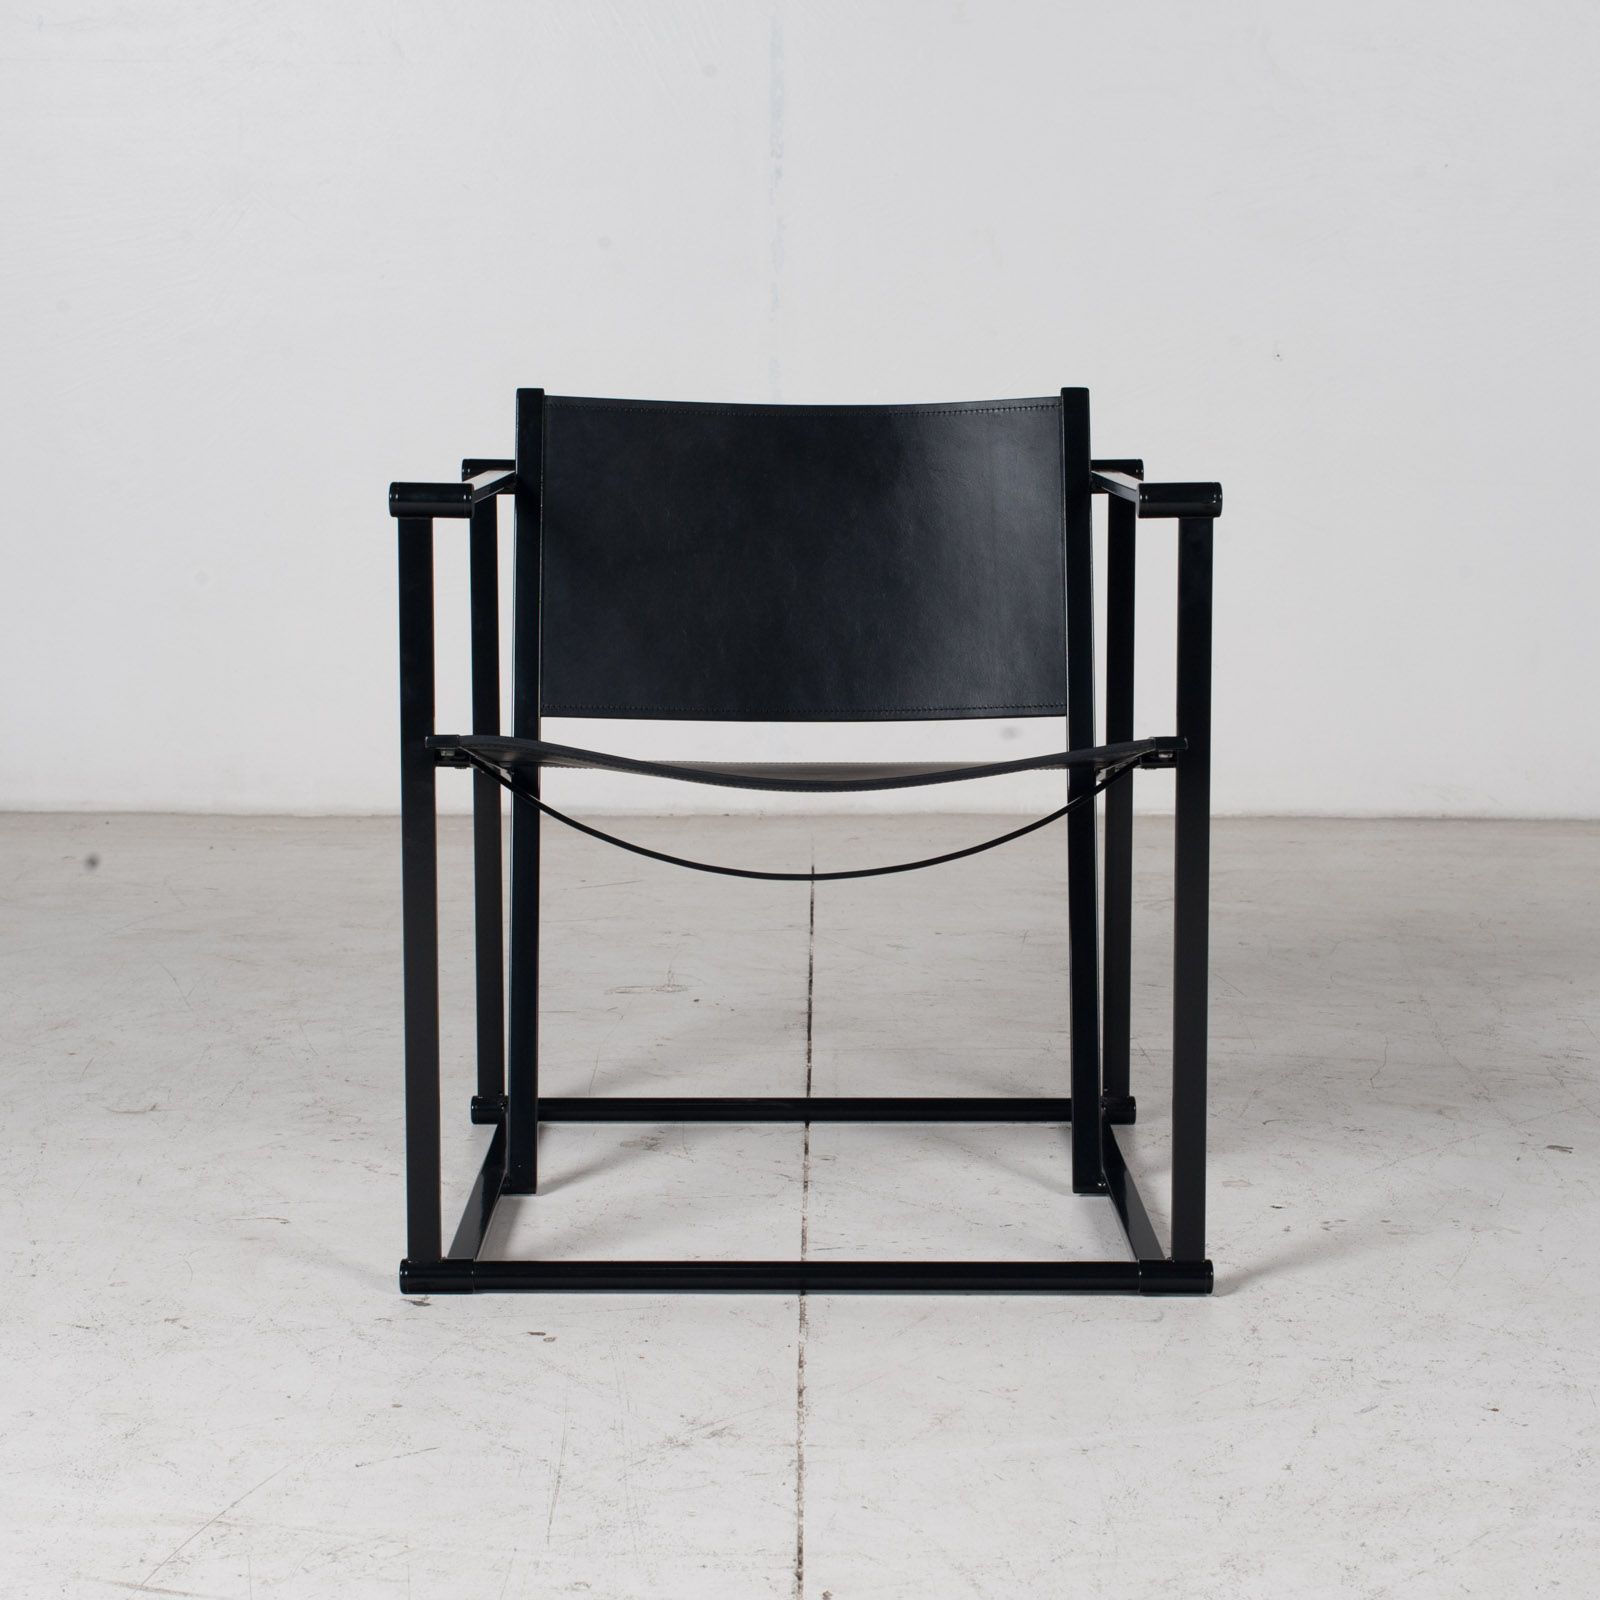 Pair Of Fm60 Cubic Chairs With Table By Radboud Van Beekum For Pastoe, 1980s, The Netherlands 1